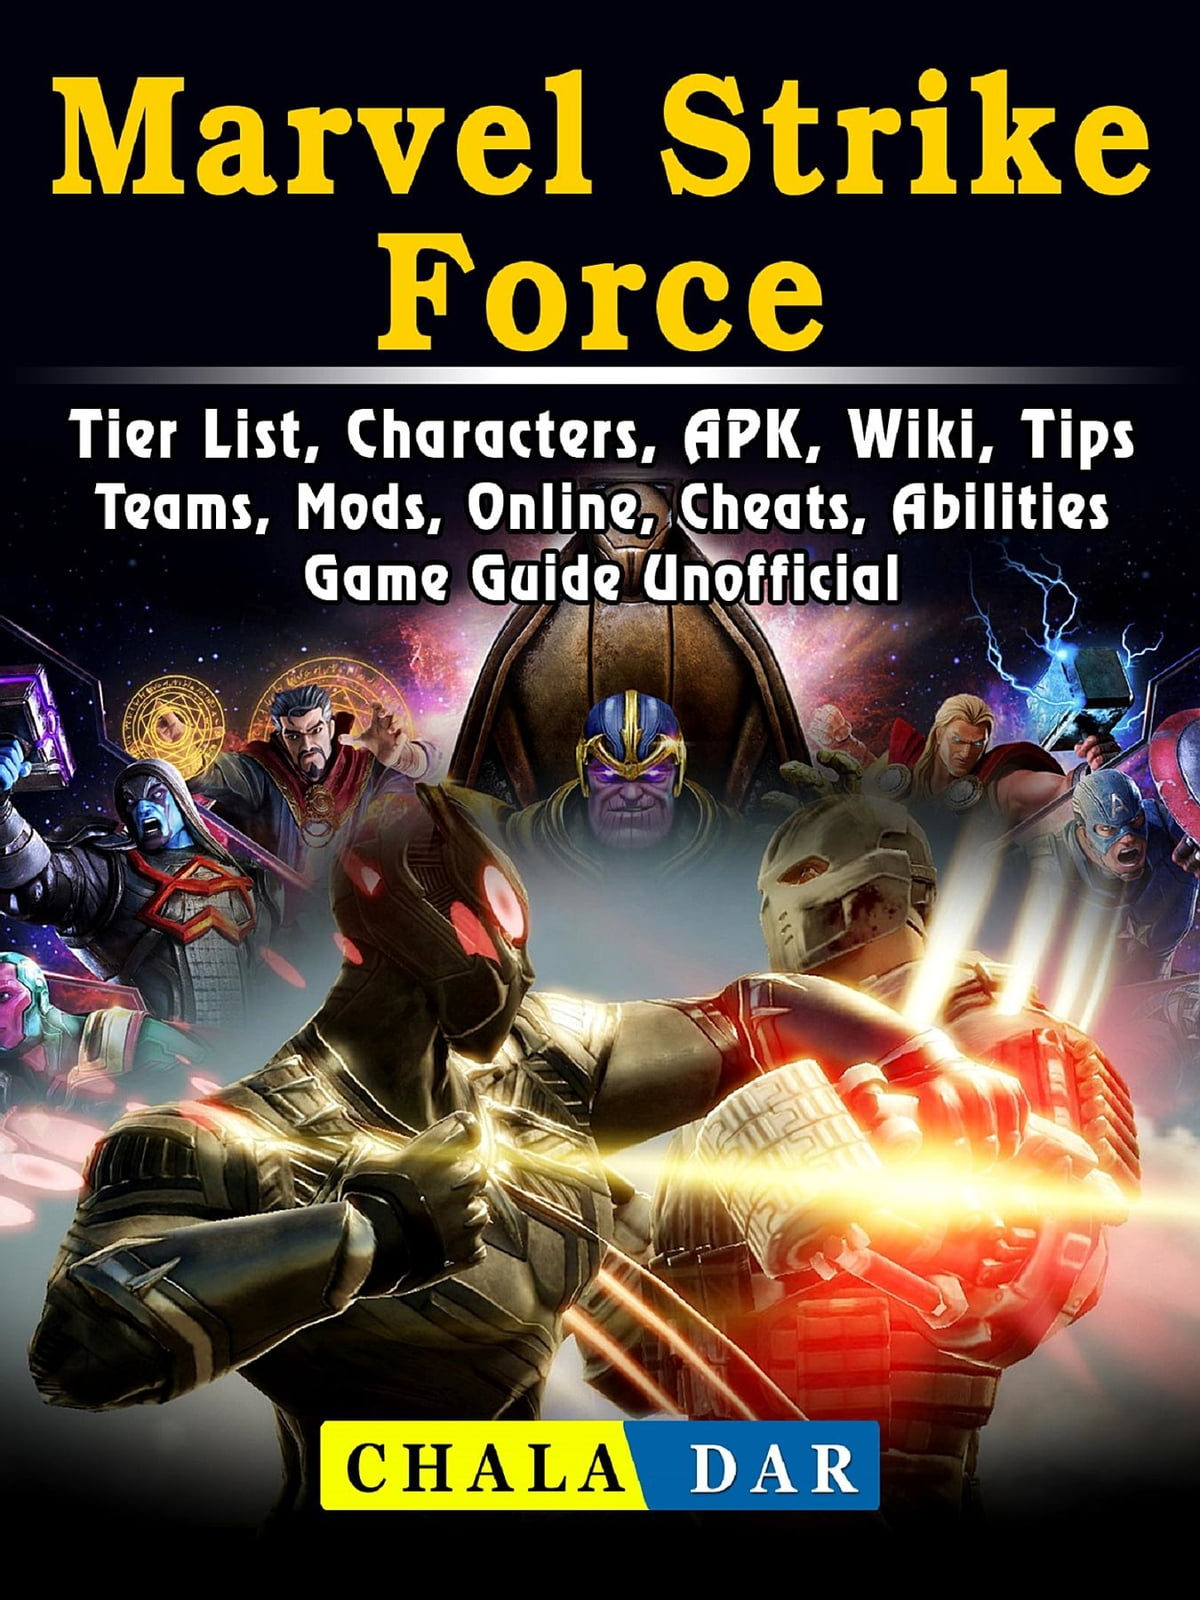 Marvel Strike Force, Tier List, Characters, APK, Wiki, Tips, Teams, Mods,  Online, Cheats, Abilities, Game Guide Unofficial eBook by Chala Dar -